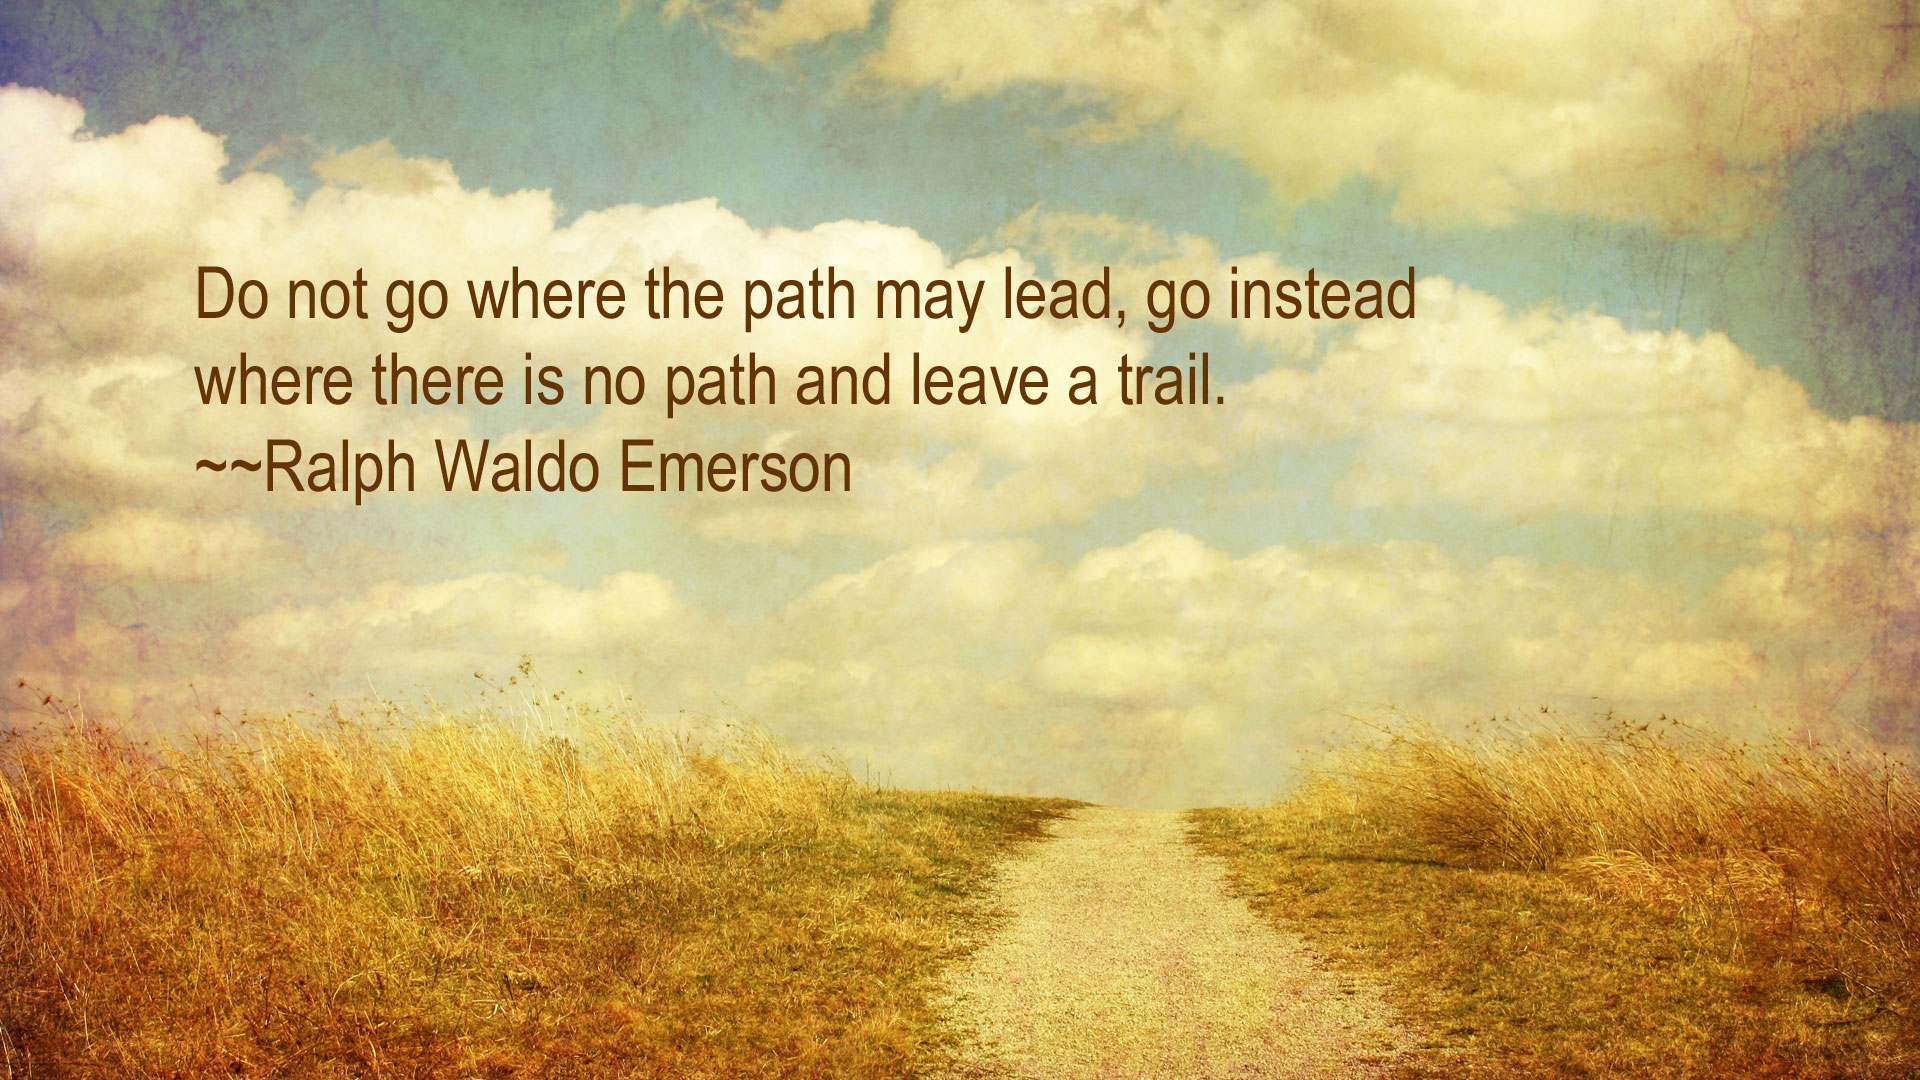 Buy A Phd Online Do Not Go Where The Path May Lead Go Instead Where There Is No Path And  Leave A Trail Raiph Waldo Emerson How To Write A Thesis Statement For A Essay also Business Plan Writer New Orleans Quotes About Ralph Emerson  Quotes Thesis Generator For Essay